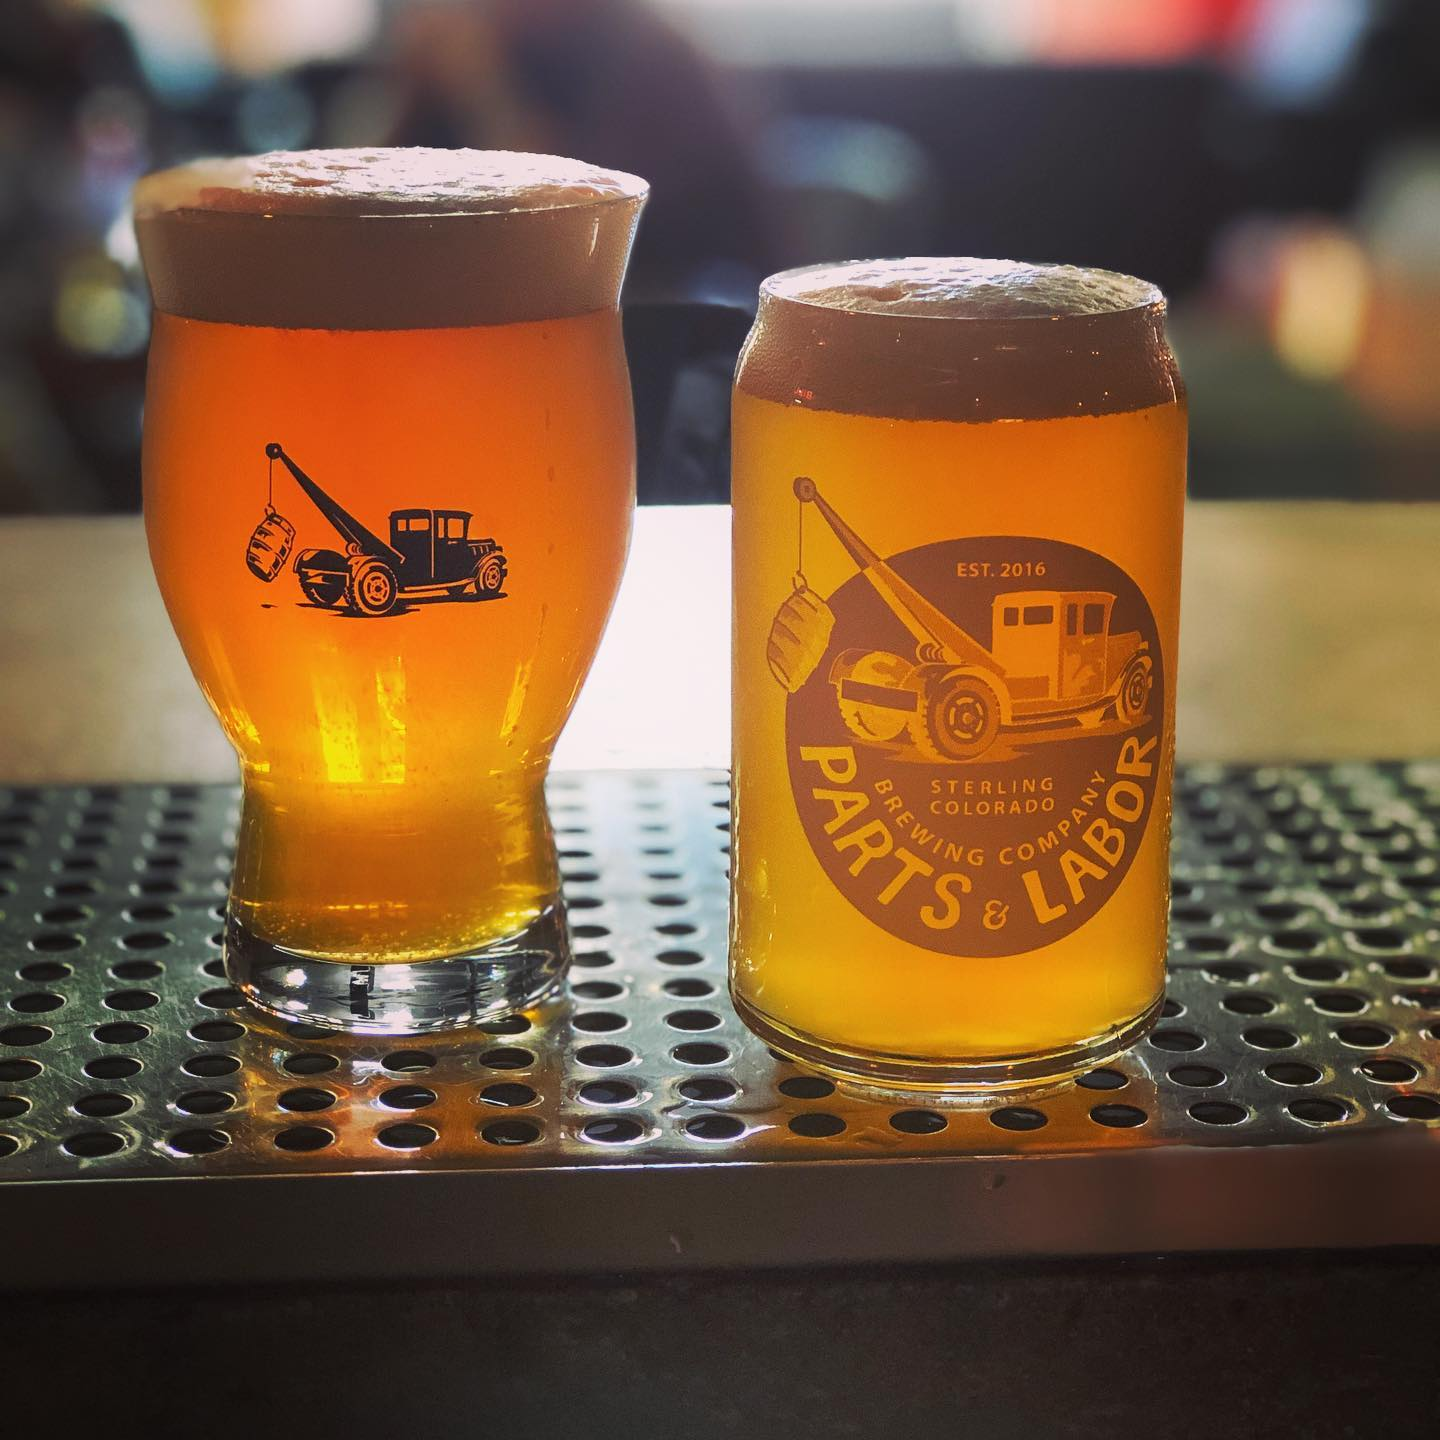 Parts and Labor Brewing Co.